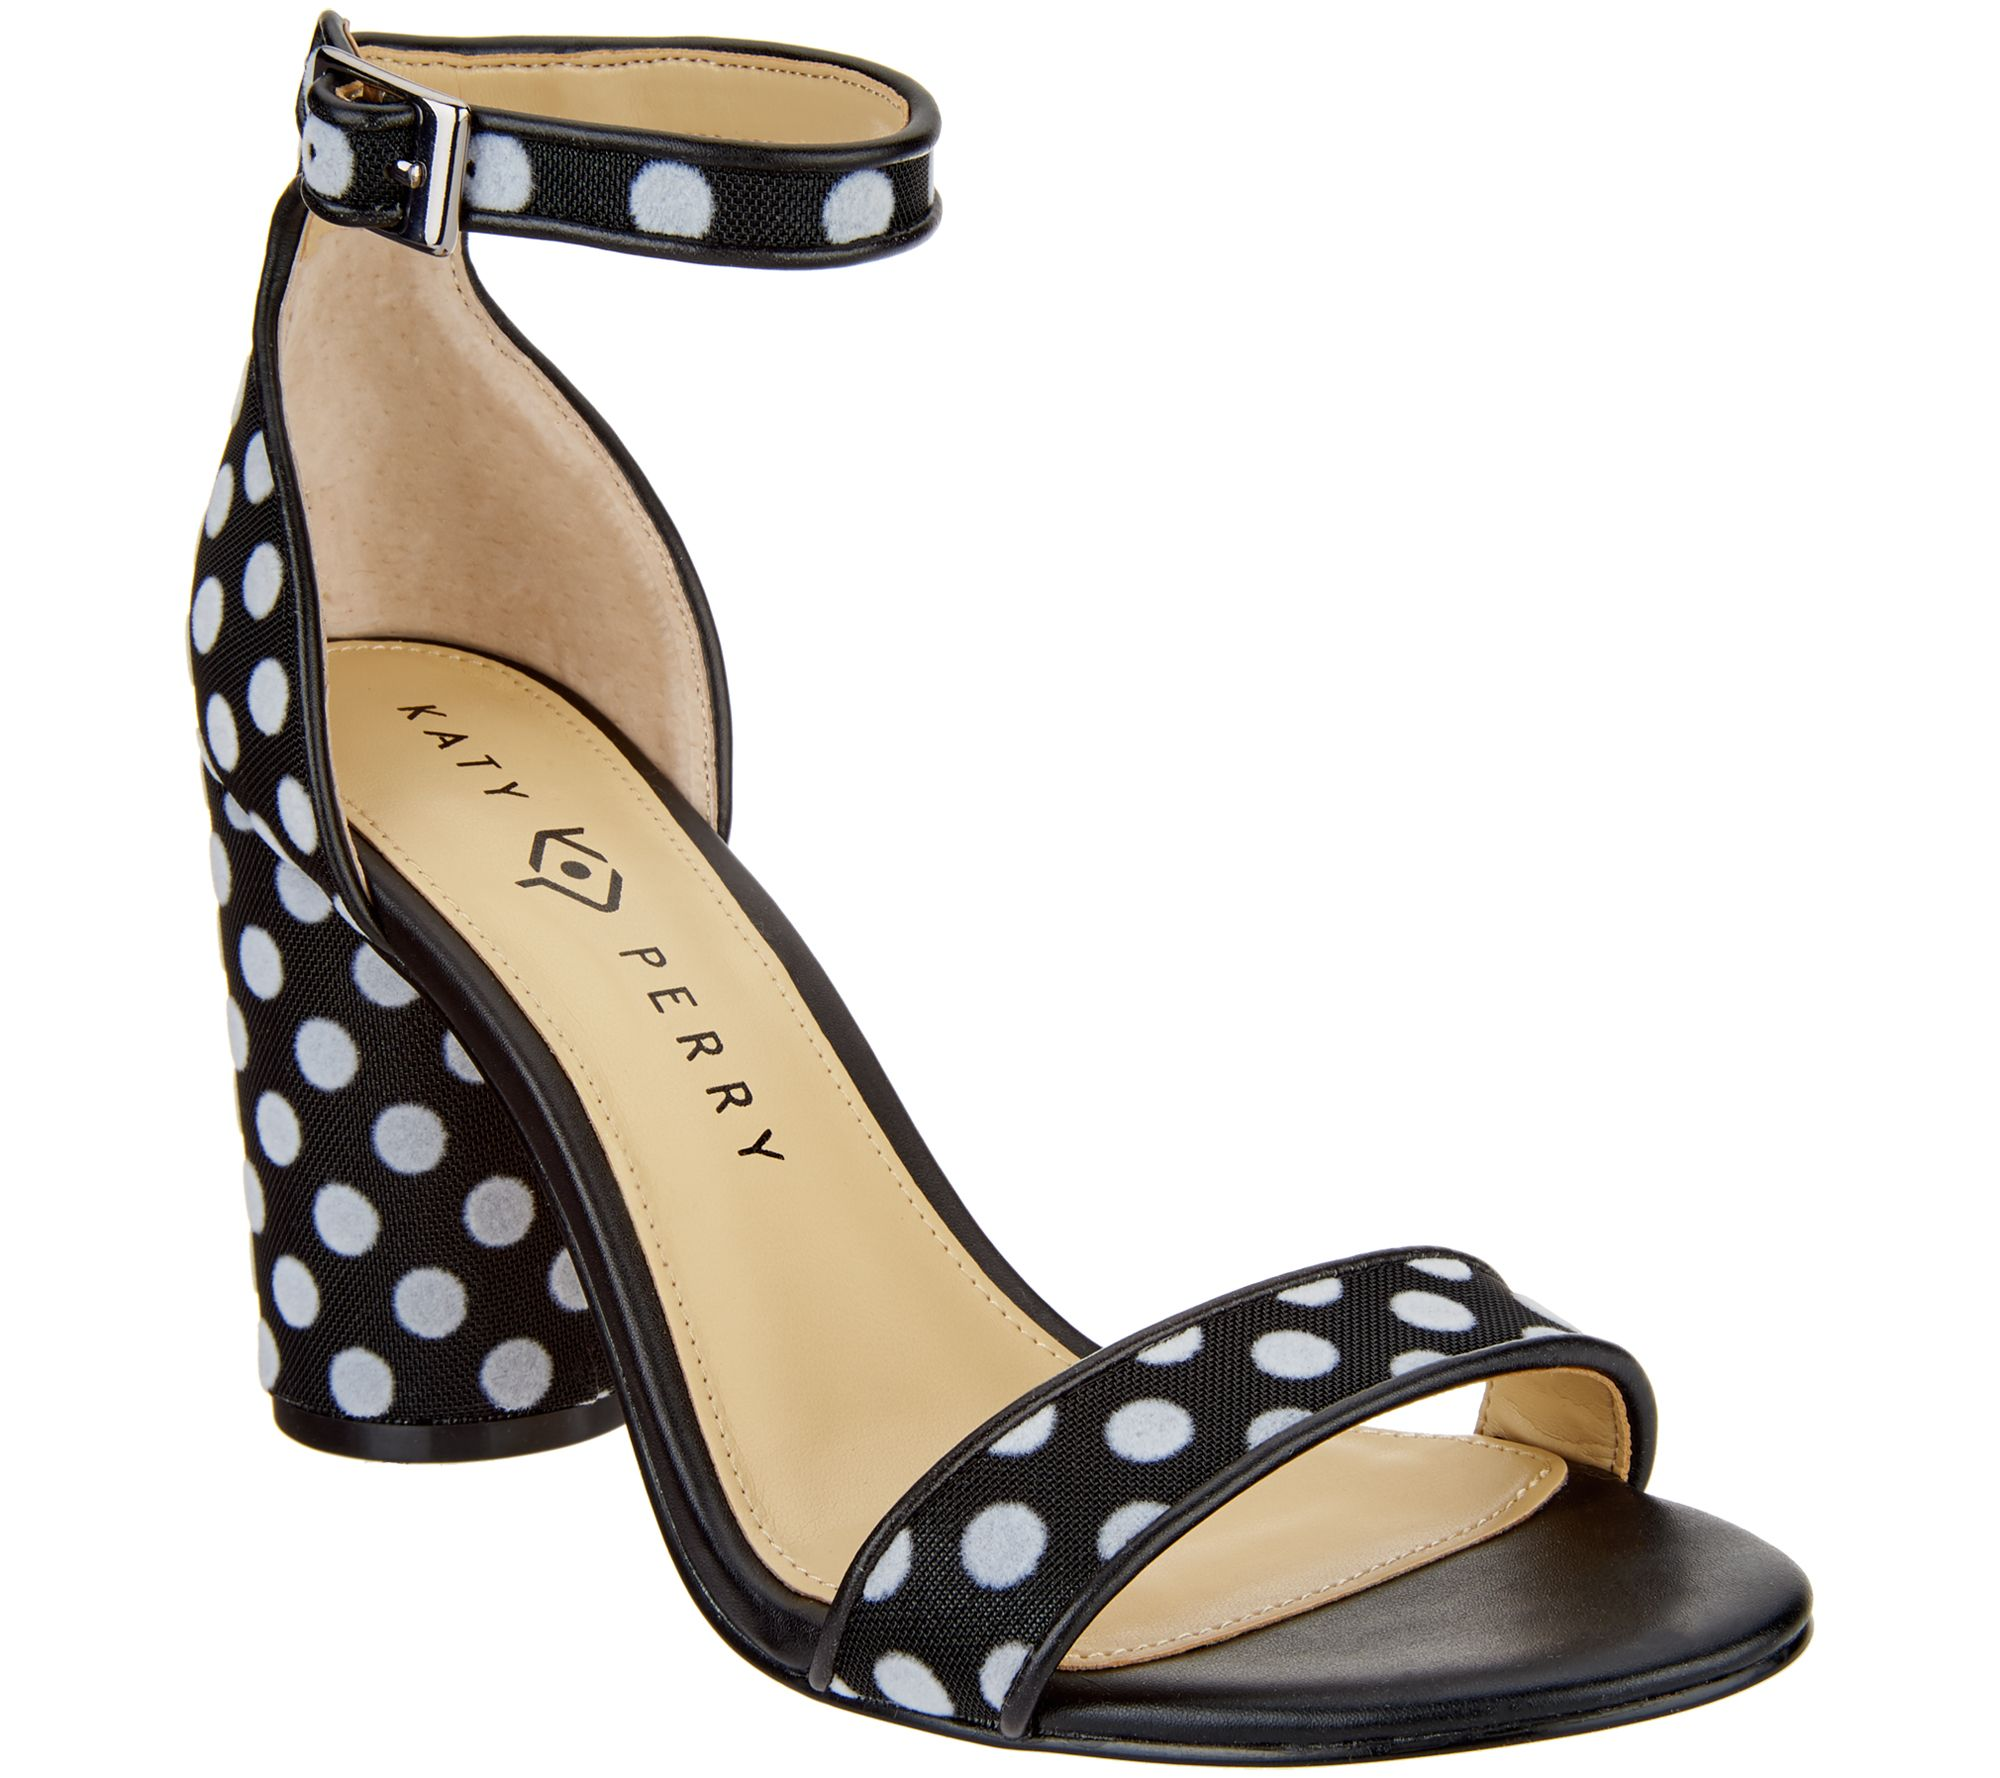 3cf38d04093e29 Katy Perry Ankle Strap Heeled Sandals- The Clara - Page 1 — QVC.com